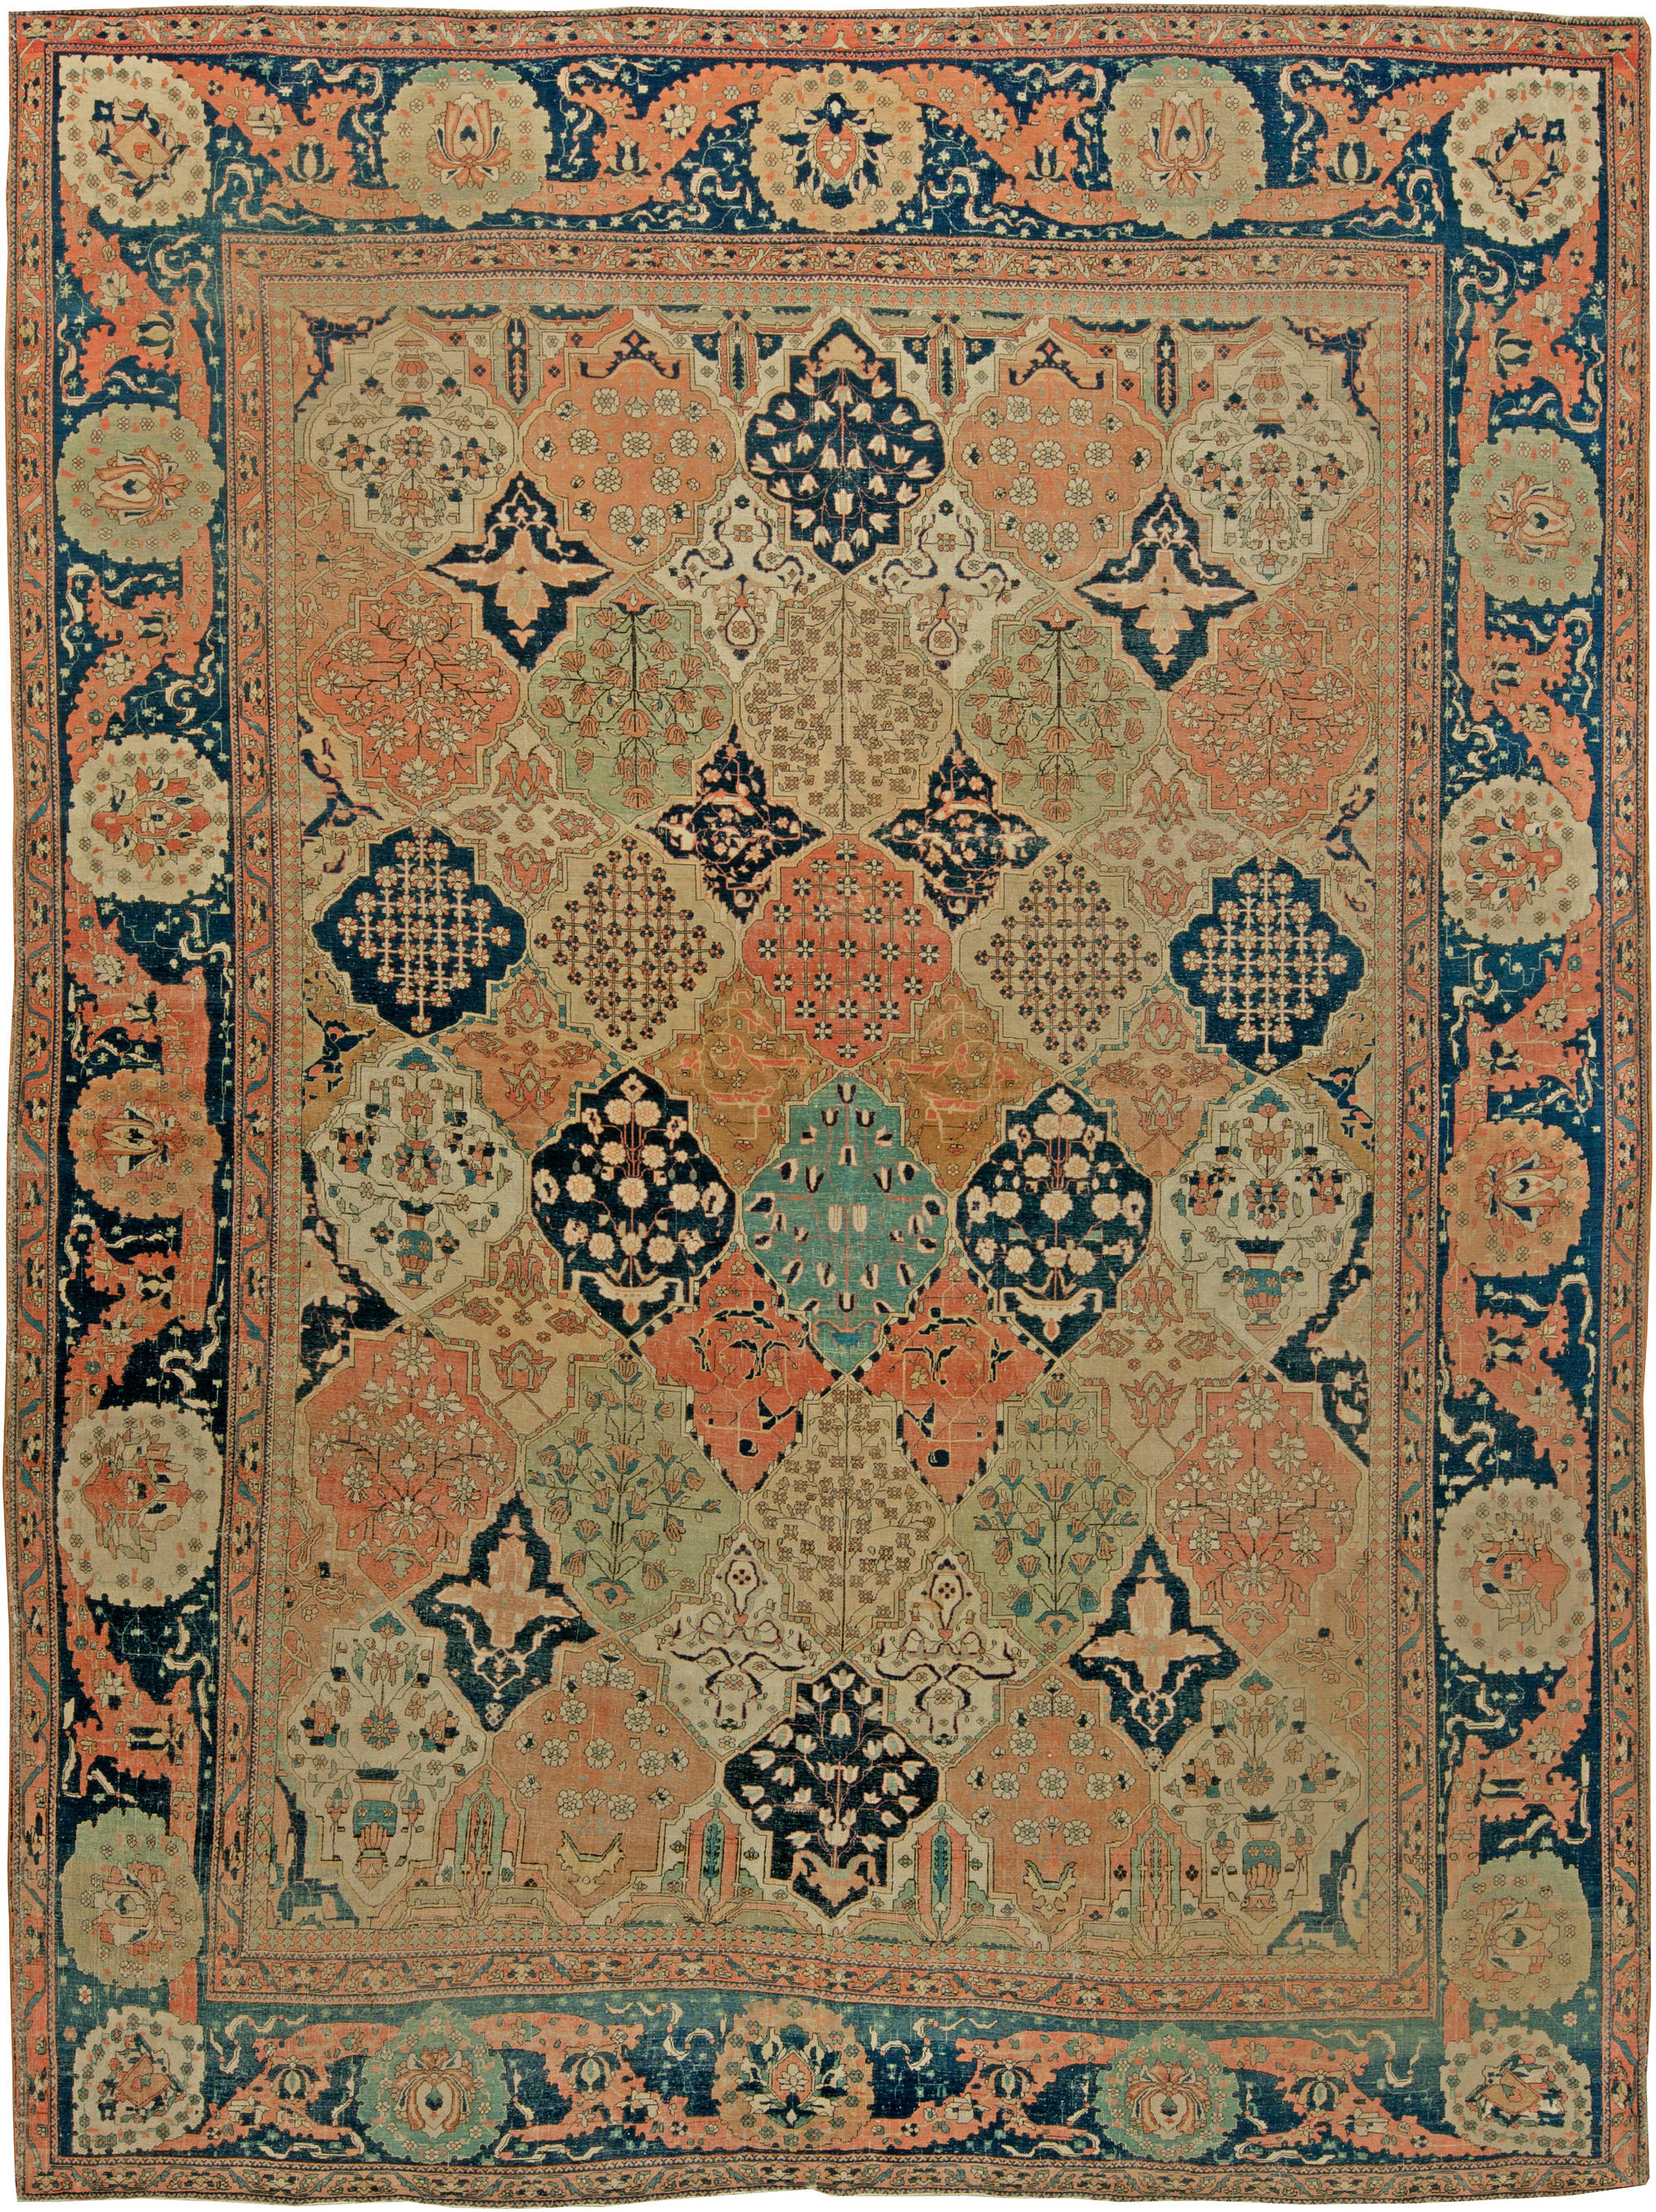 Antique Rugs From Doris Leslie Blau New York Antique Carpets